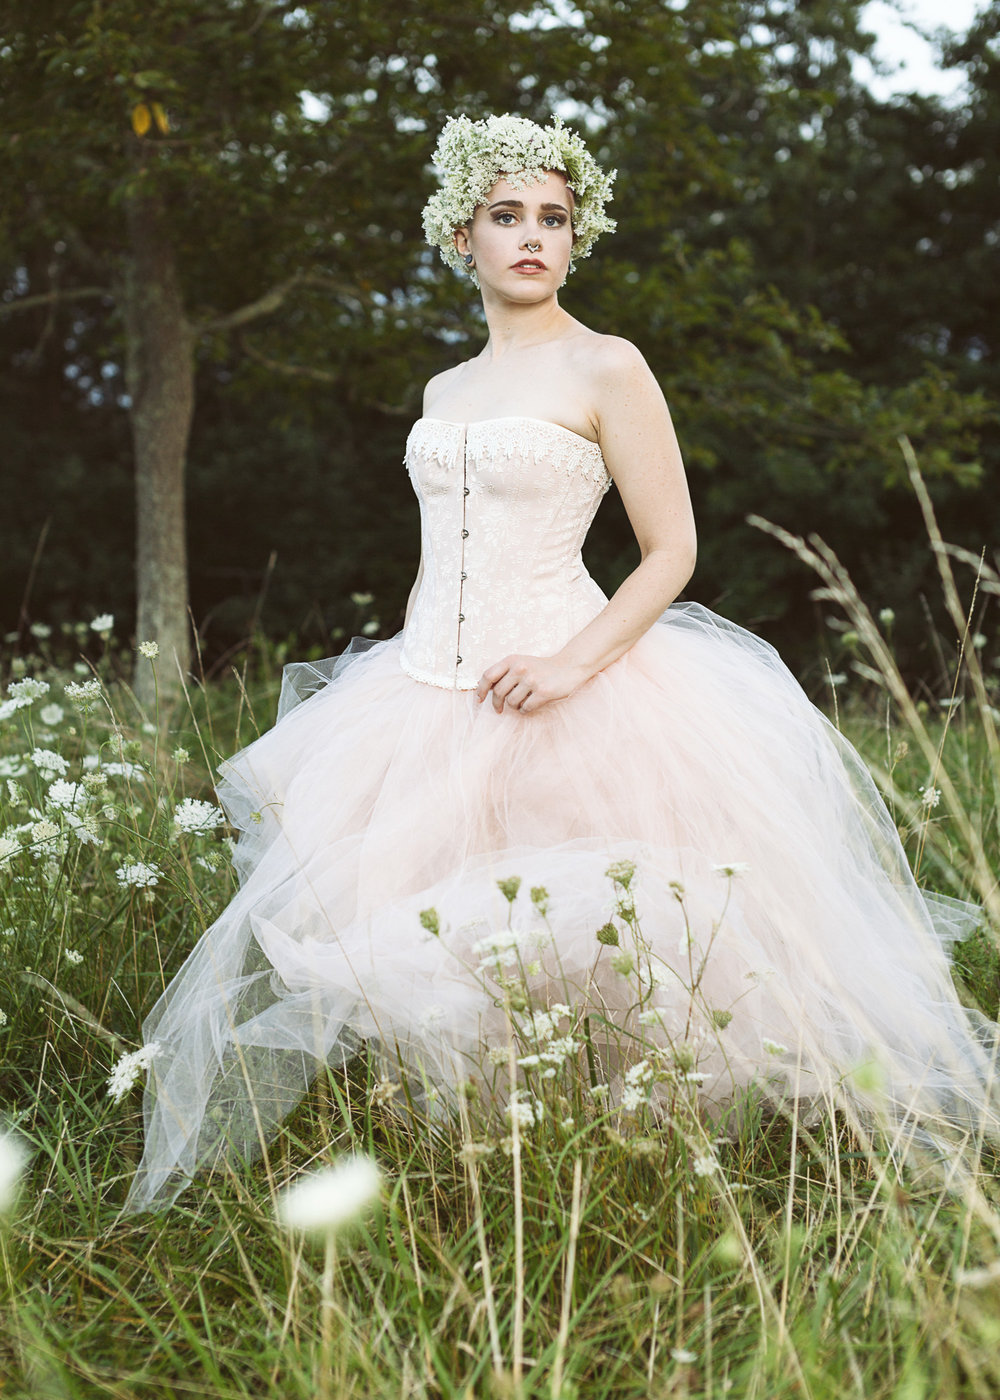 Hannah's tulle gown looks beautiful in the meadow